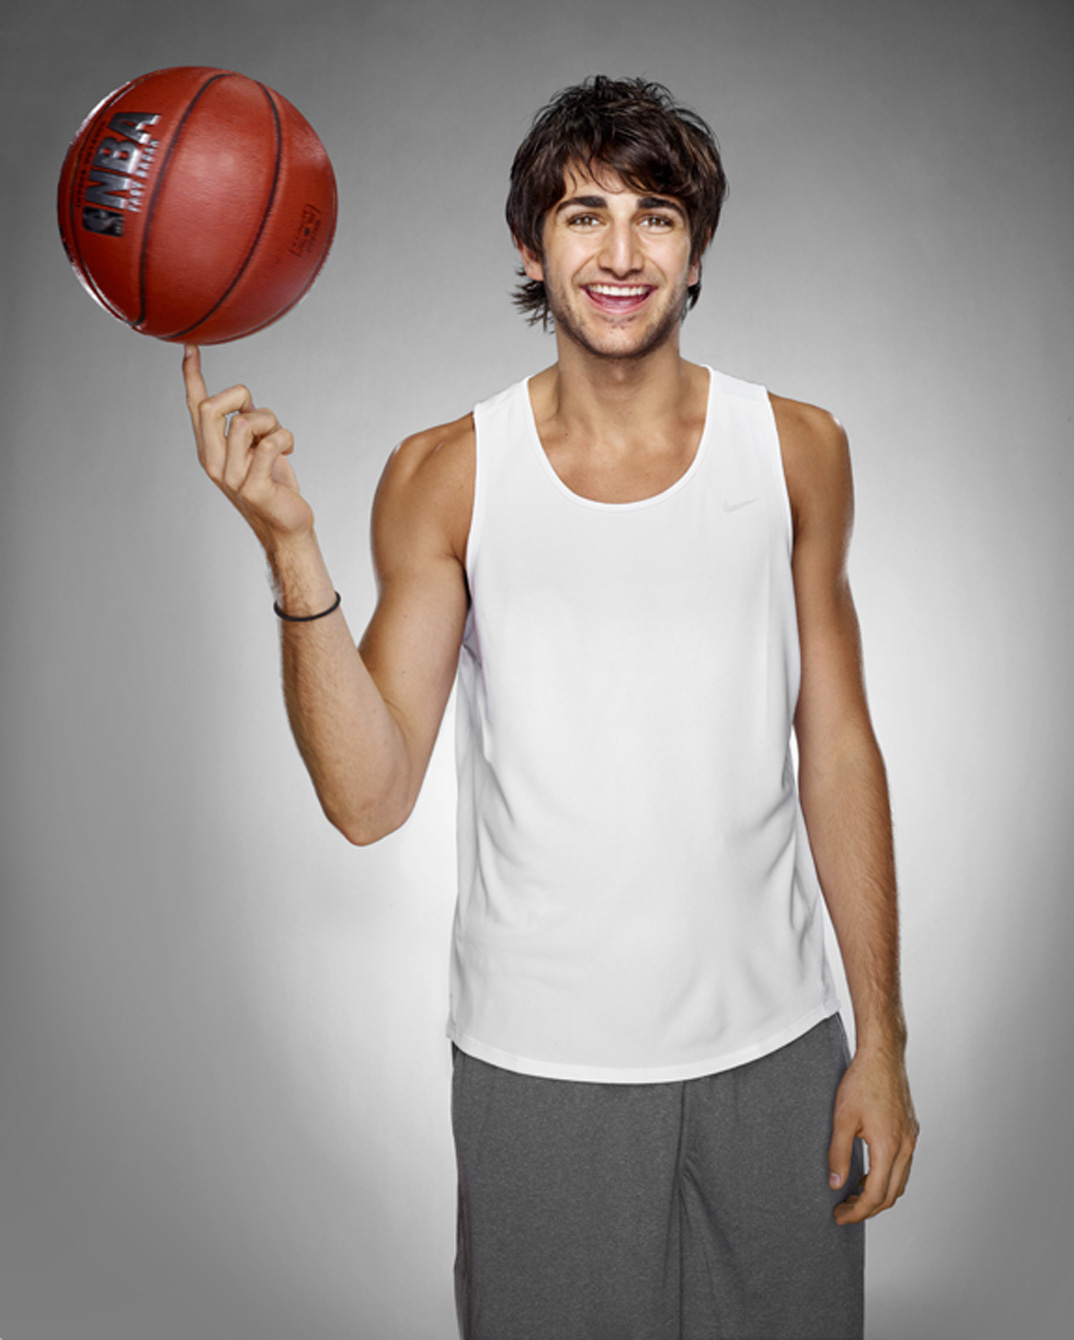 Ricky Rubio by Martin Schoeller / Hair and Makeup by Stacy  Skinner